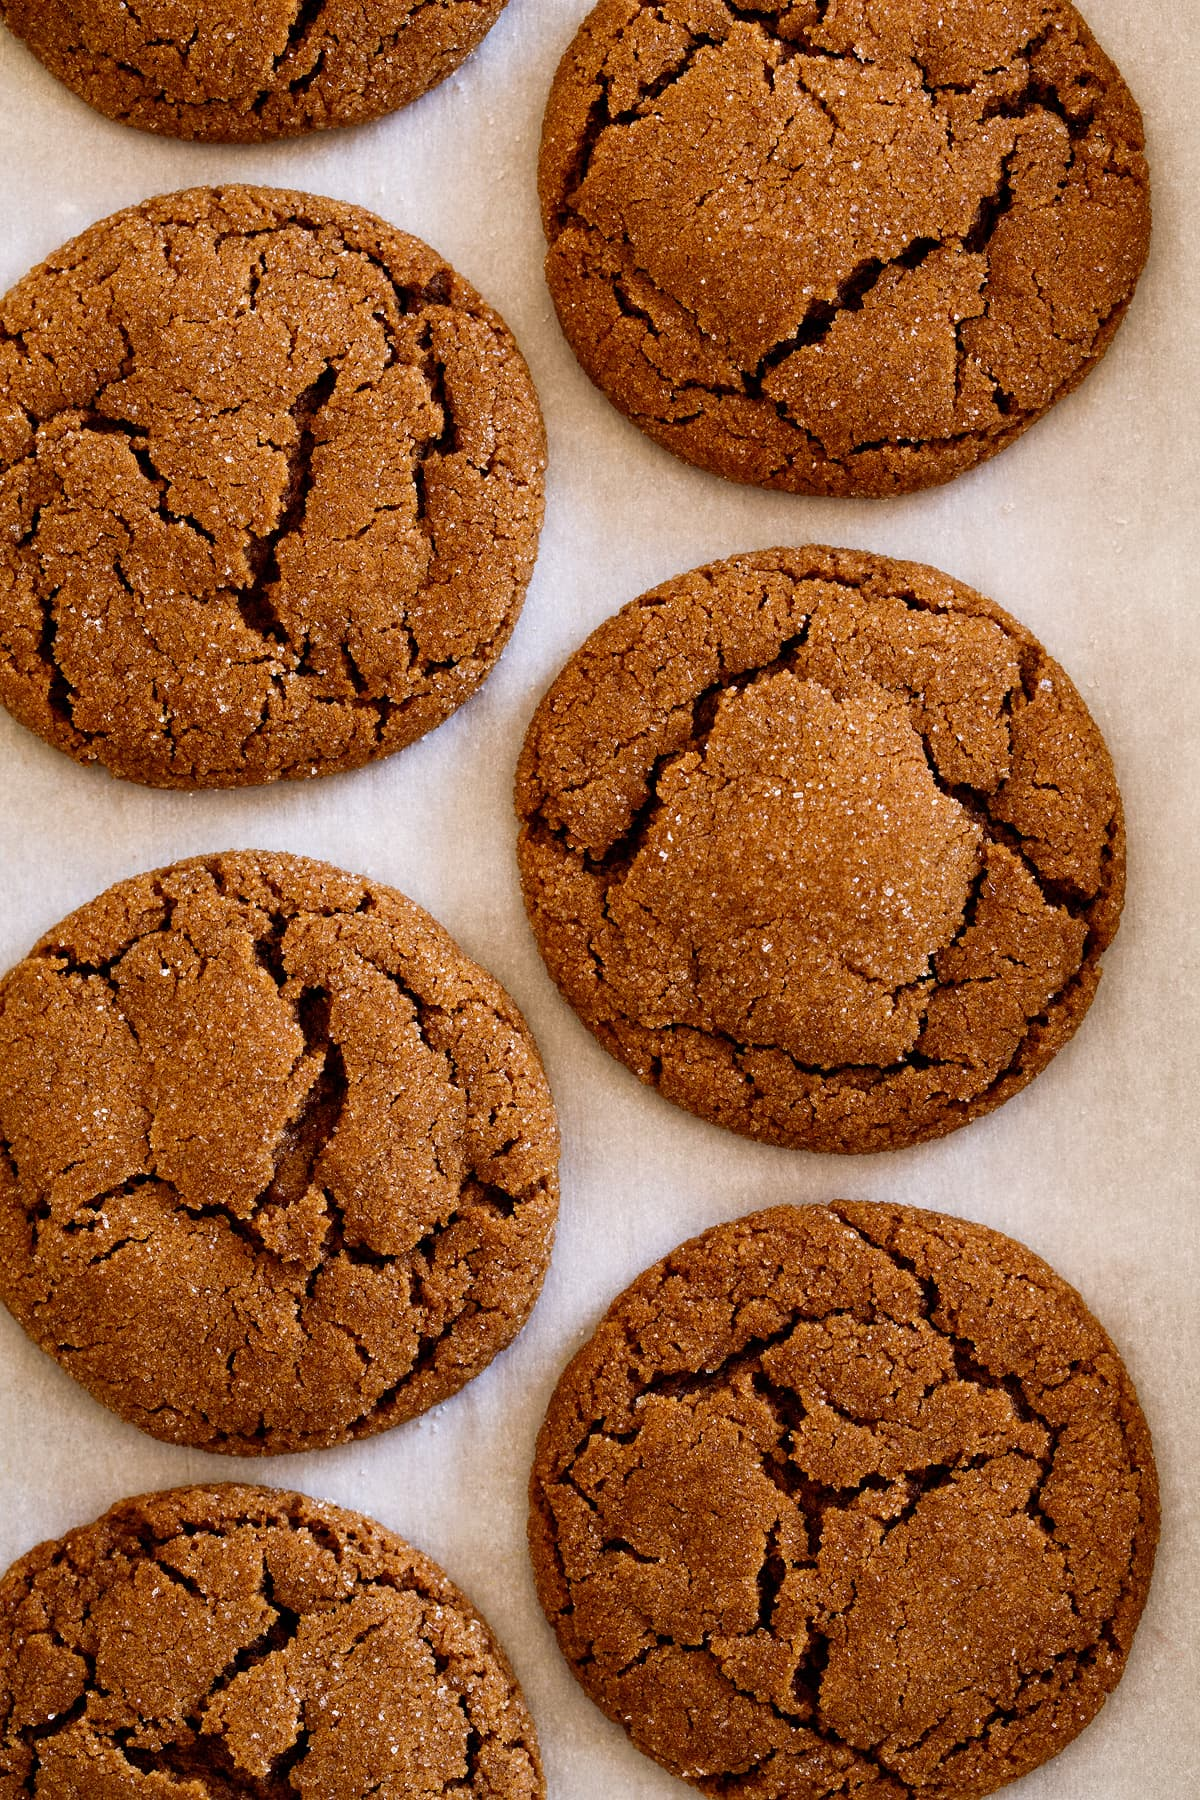 Overhead close up image of molasses cookies on parchment paper.